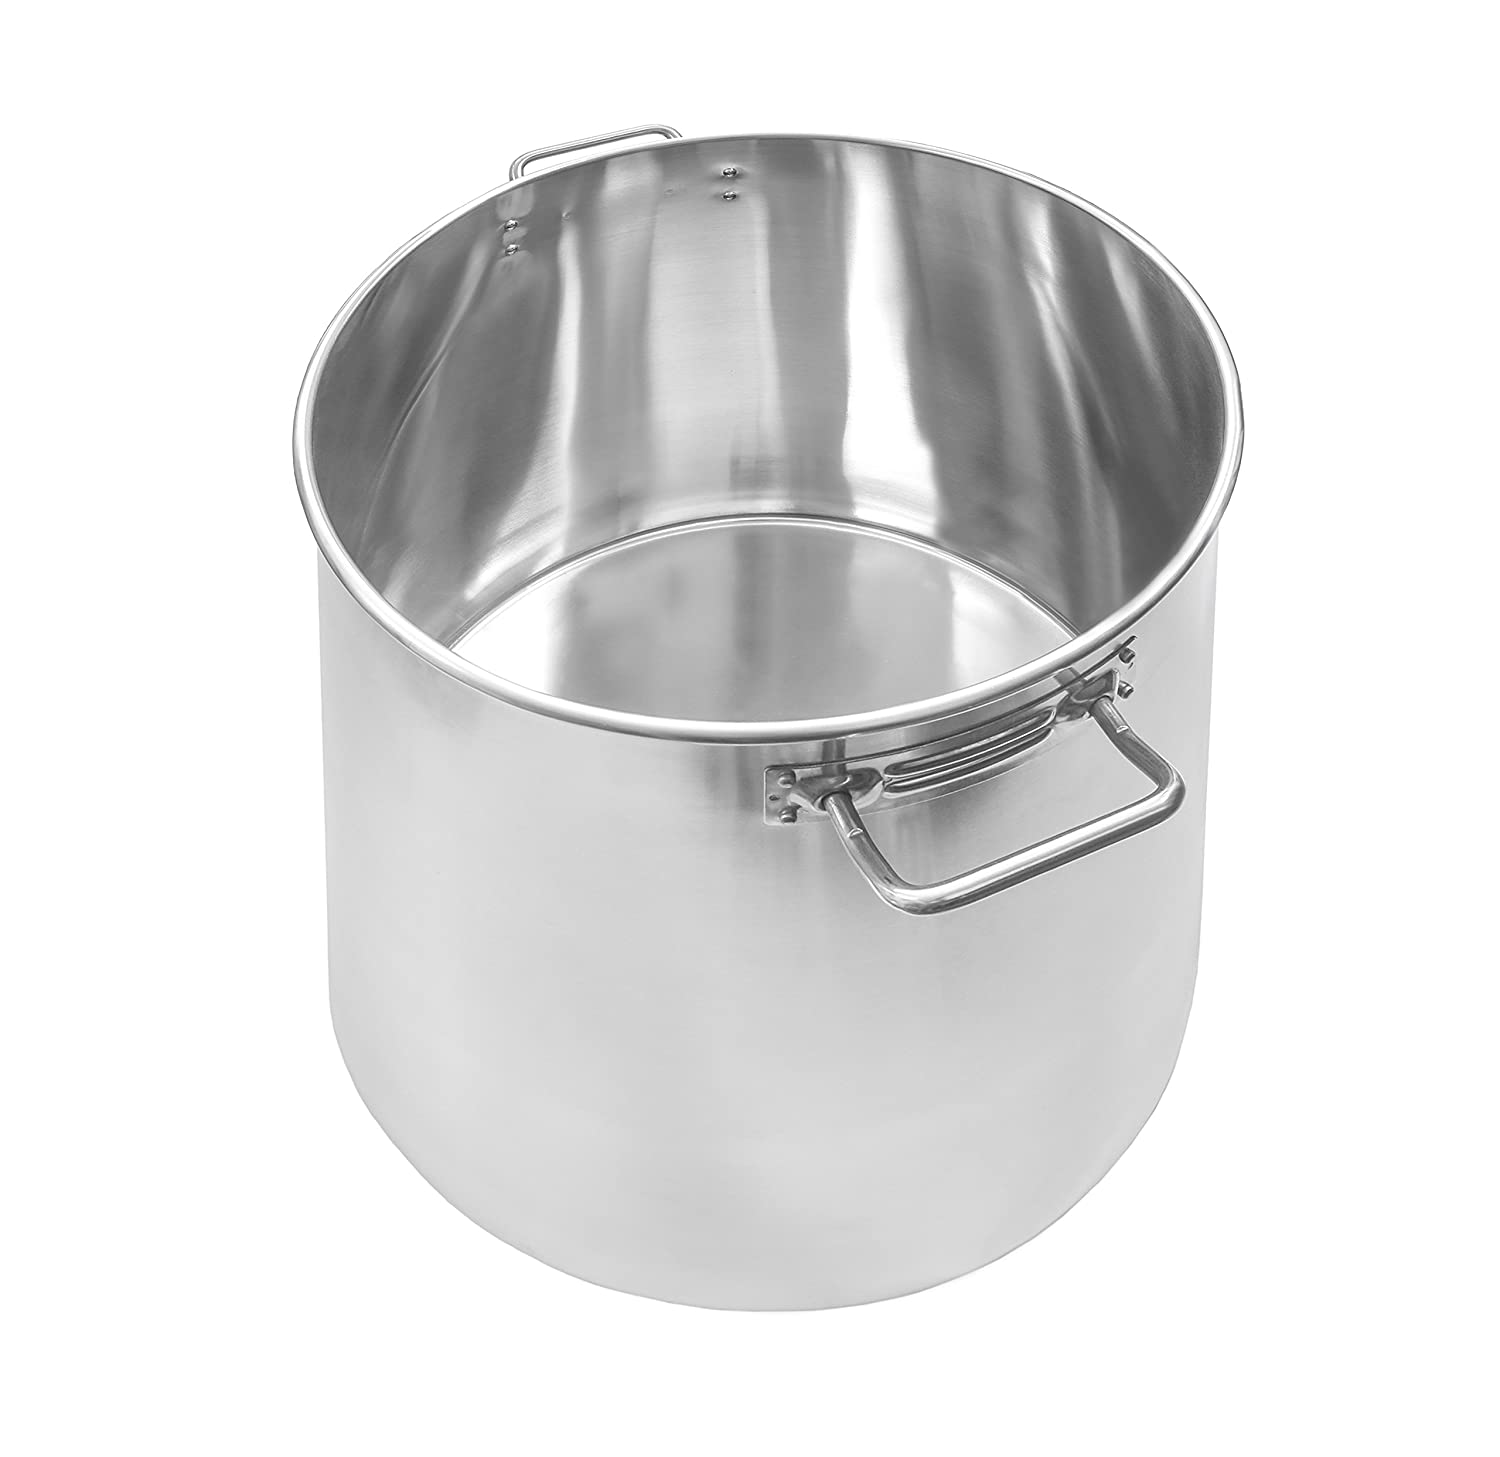 Concord Cookware S3539S Stainless Steel Stock Pot Cookware, 40-Quart